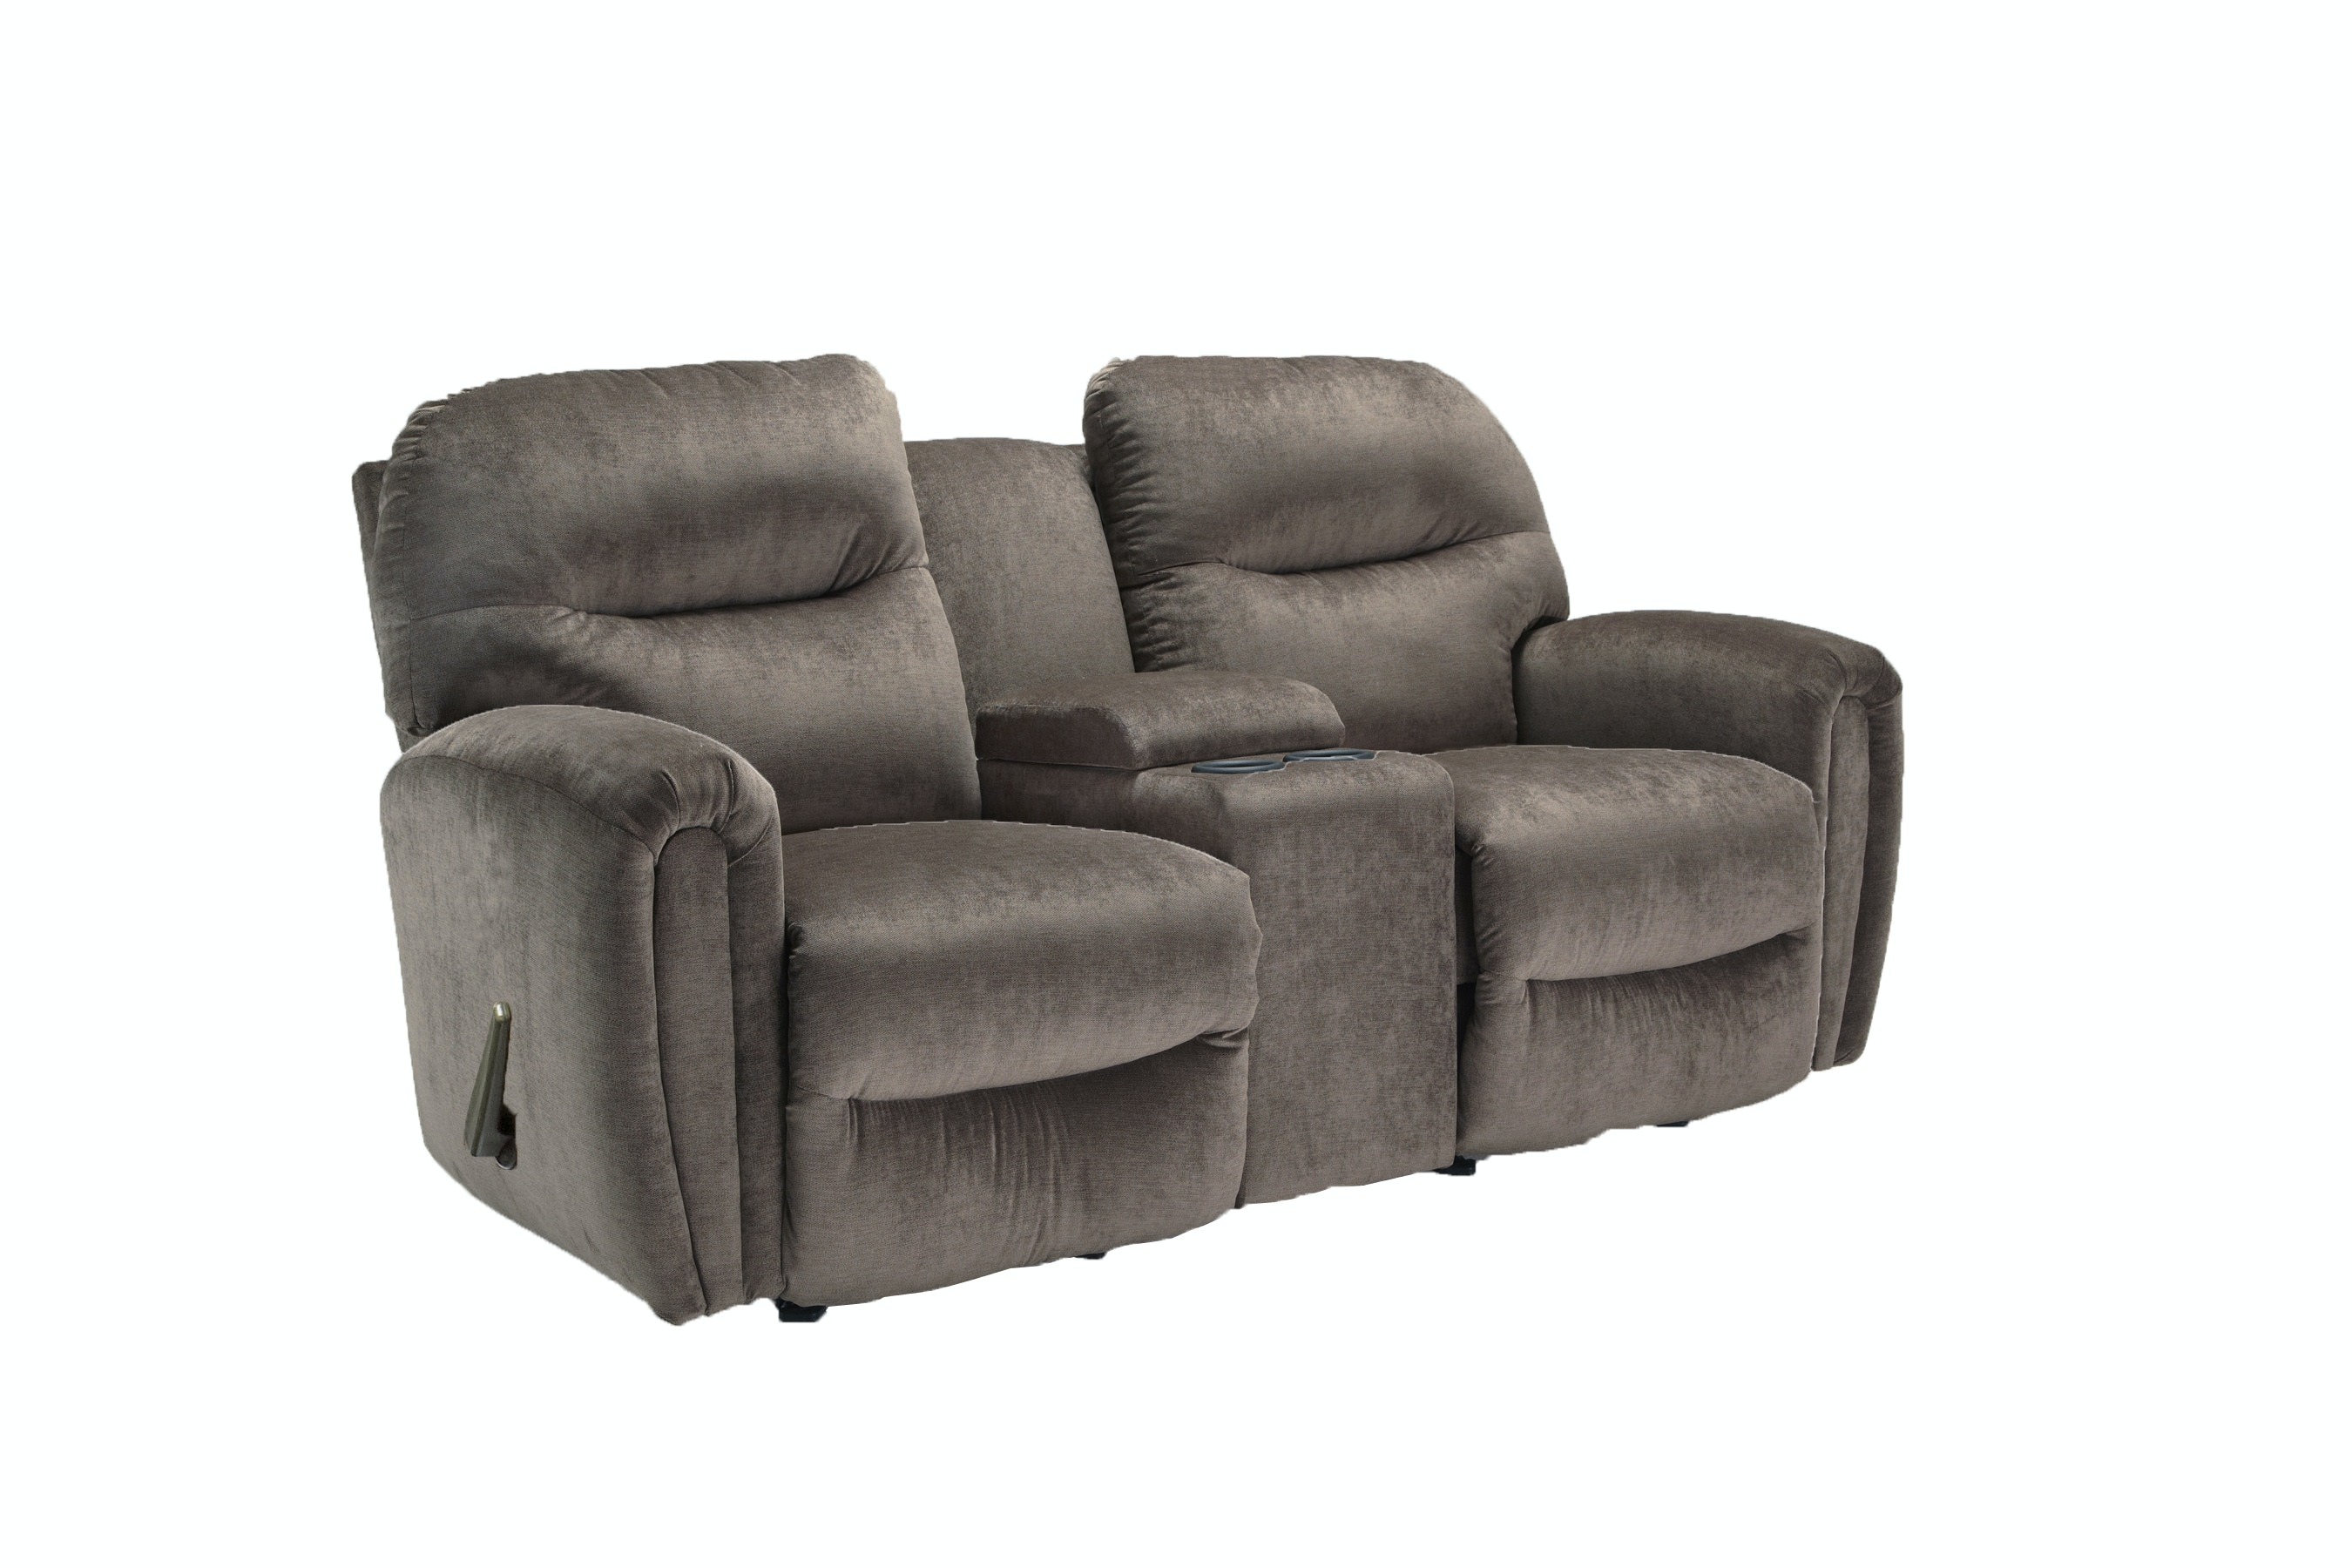 Best Home Furnishings Markson reclining loveseat with console 259764  sc 1 st  Talsma Furniture & Best Home Furnishings Markson reclining loveseat with console ... islam-shia.org